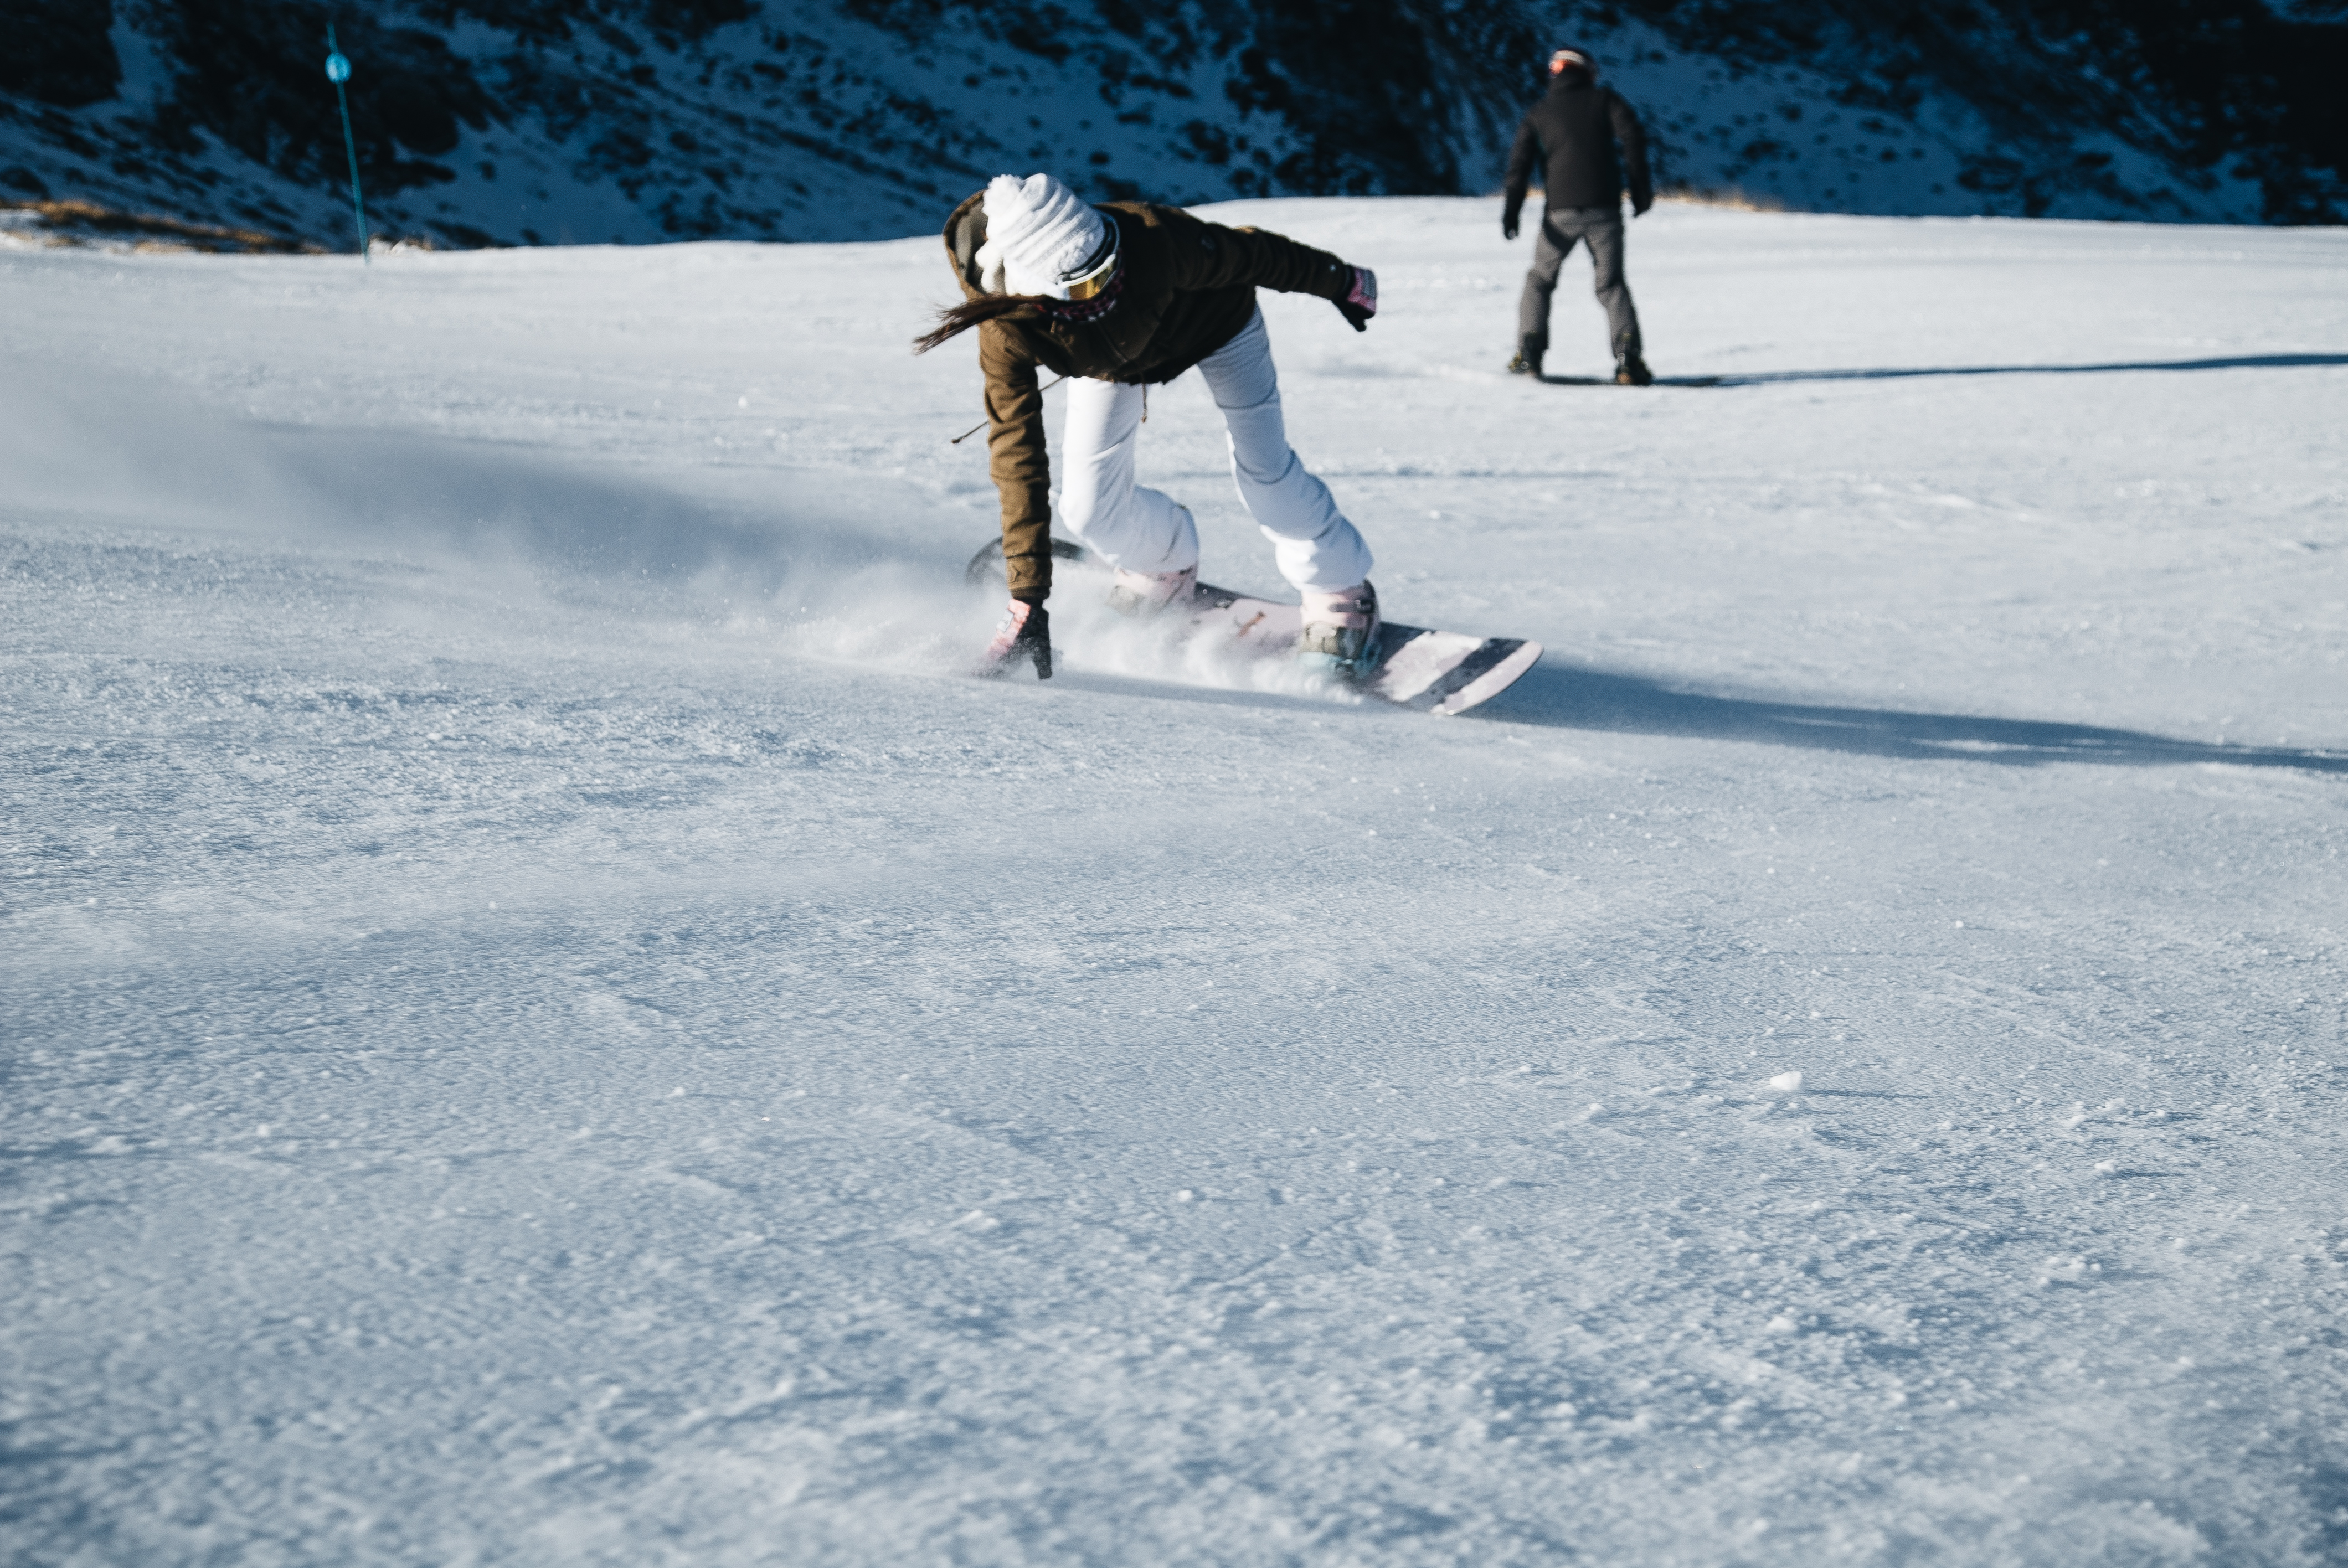 Snowboard tipos